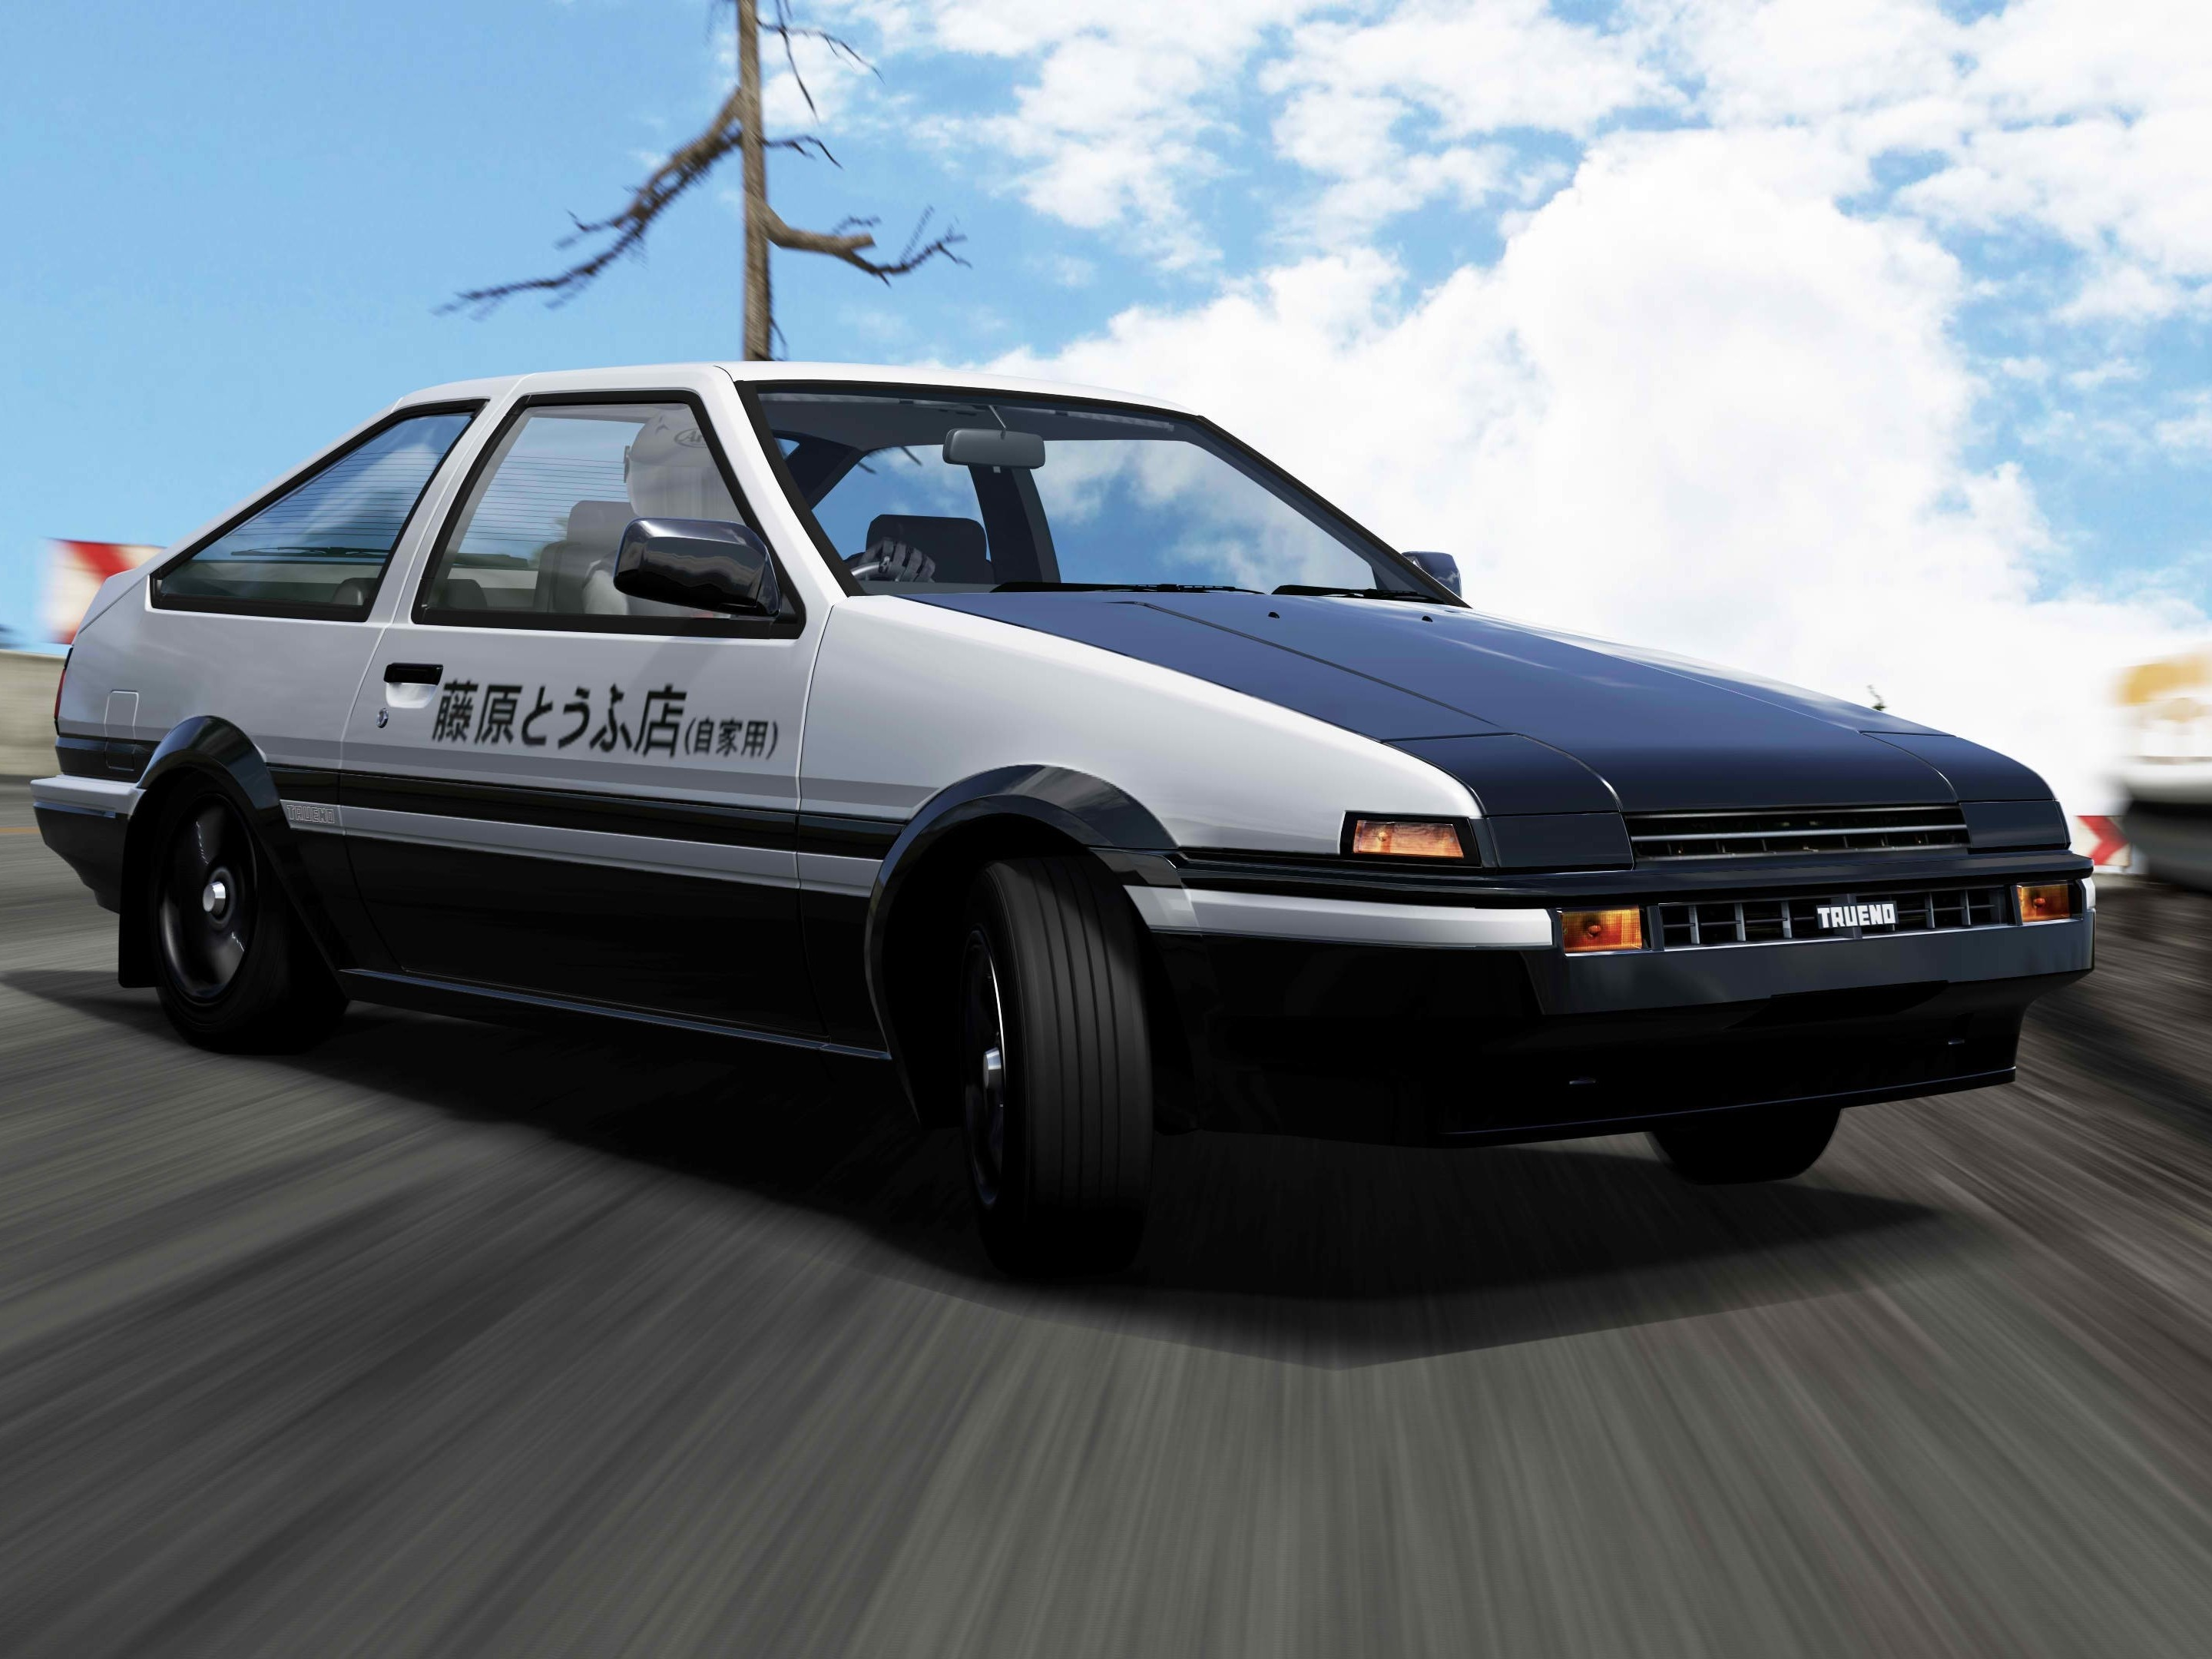 Initial d wallpapers wallpapertag - Ae86 initial d wallpaper ...